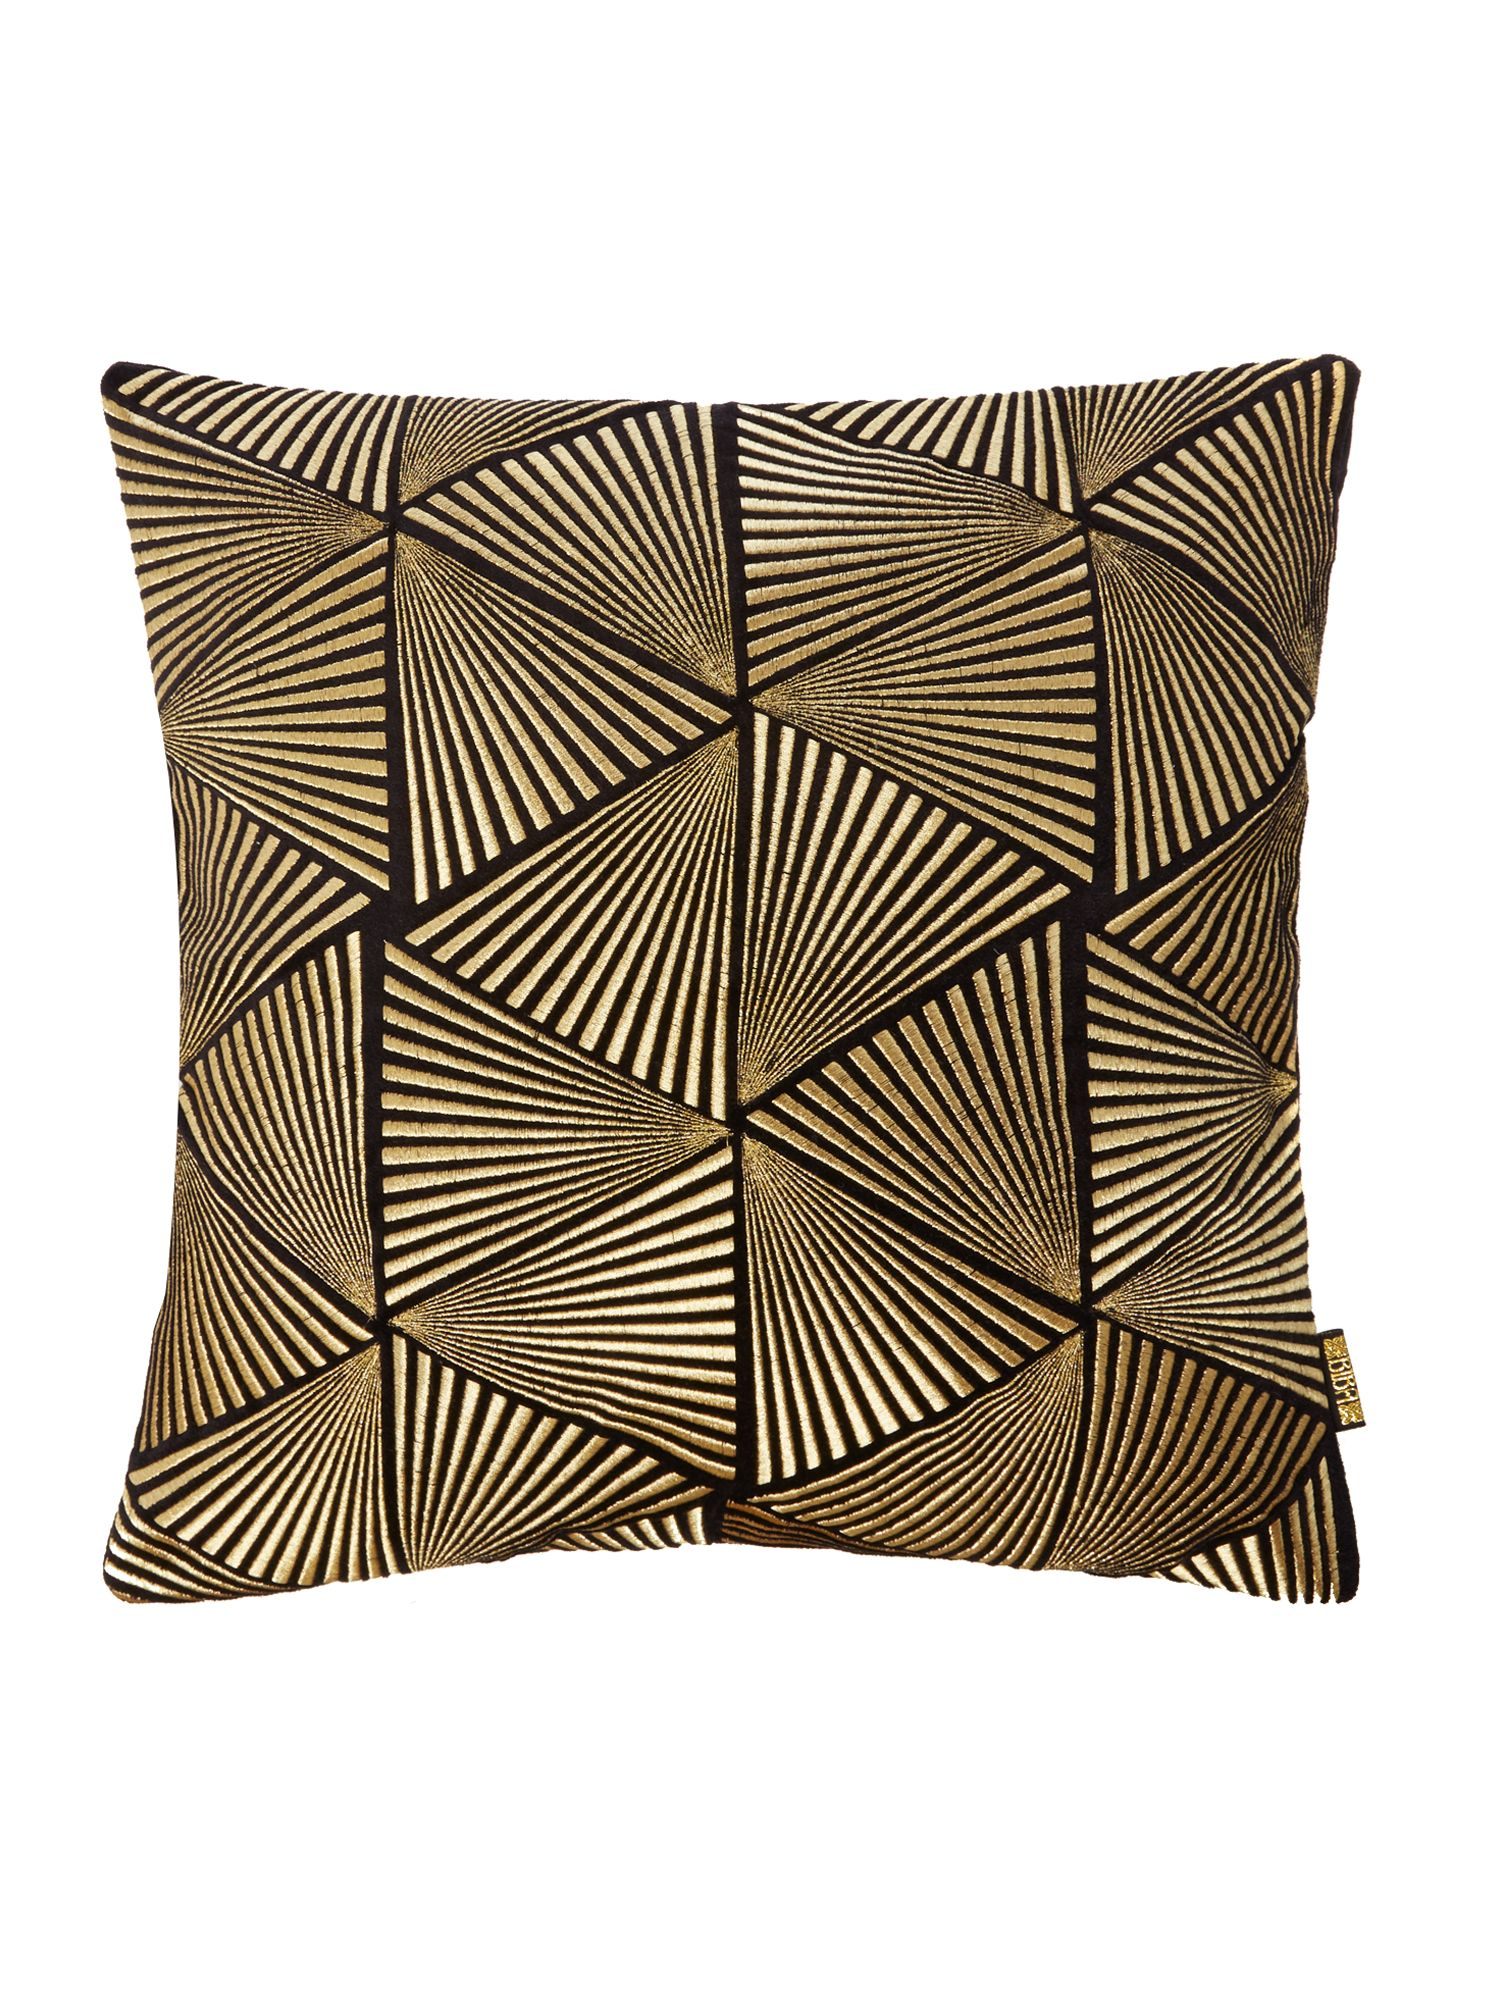 biba modern fan cushion gay times uk. Black Bedroom Furniture Sets. Home Design Ideas